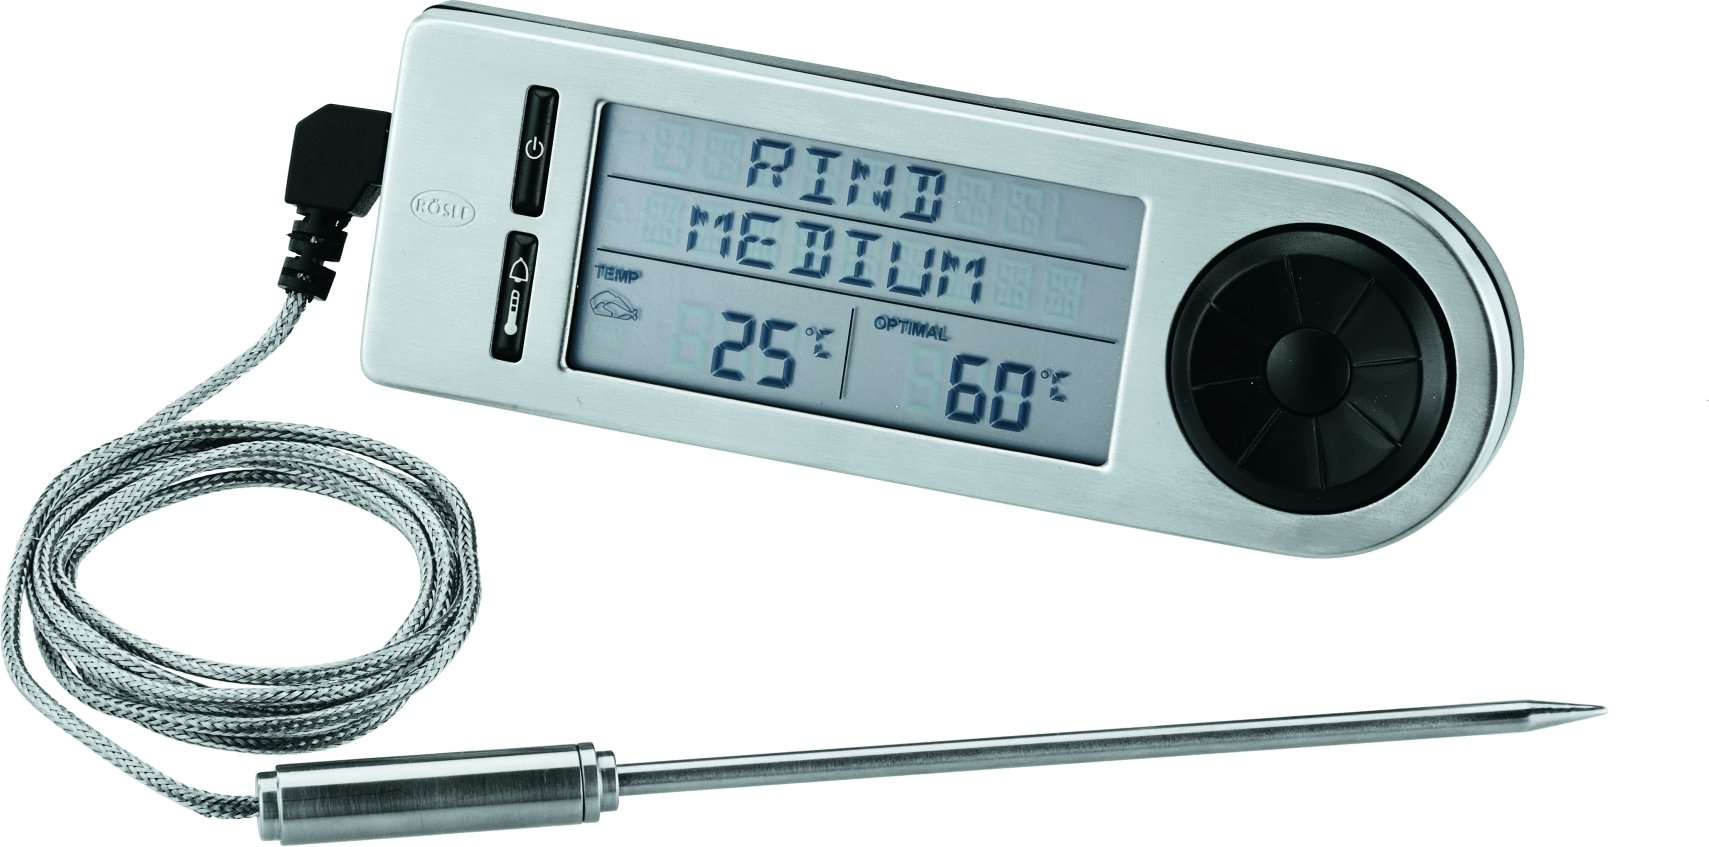 R�sle digitale thermometer